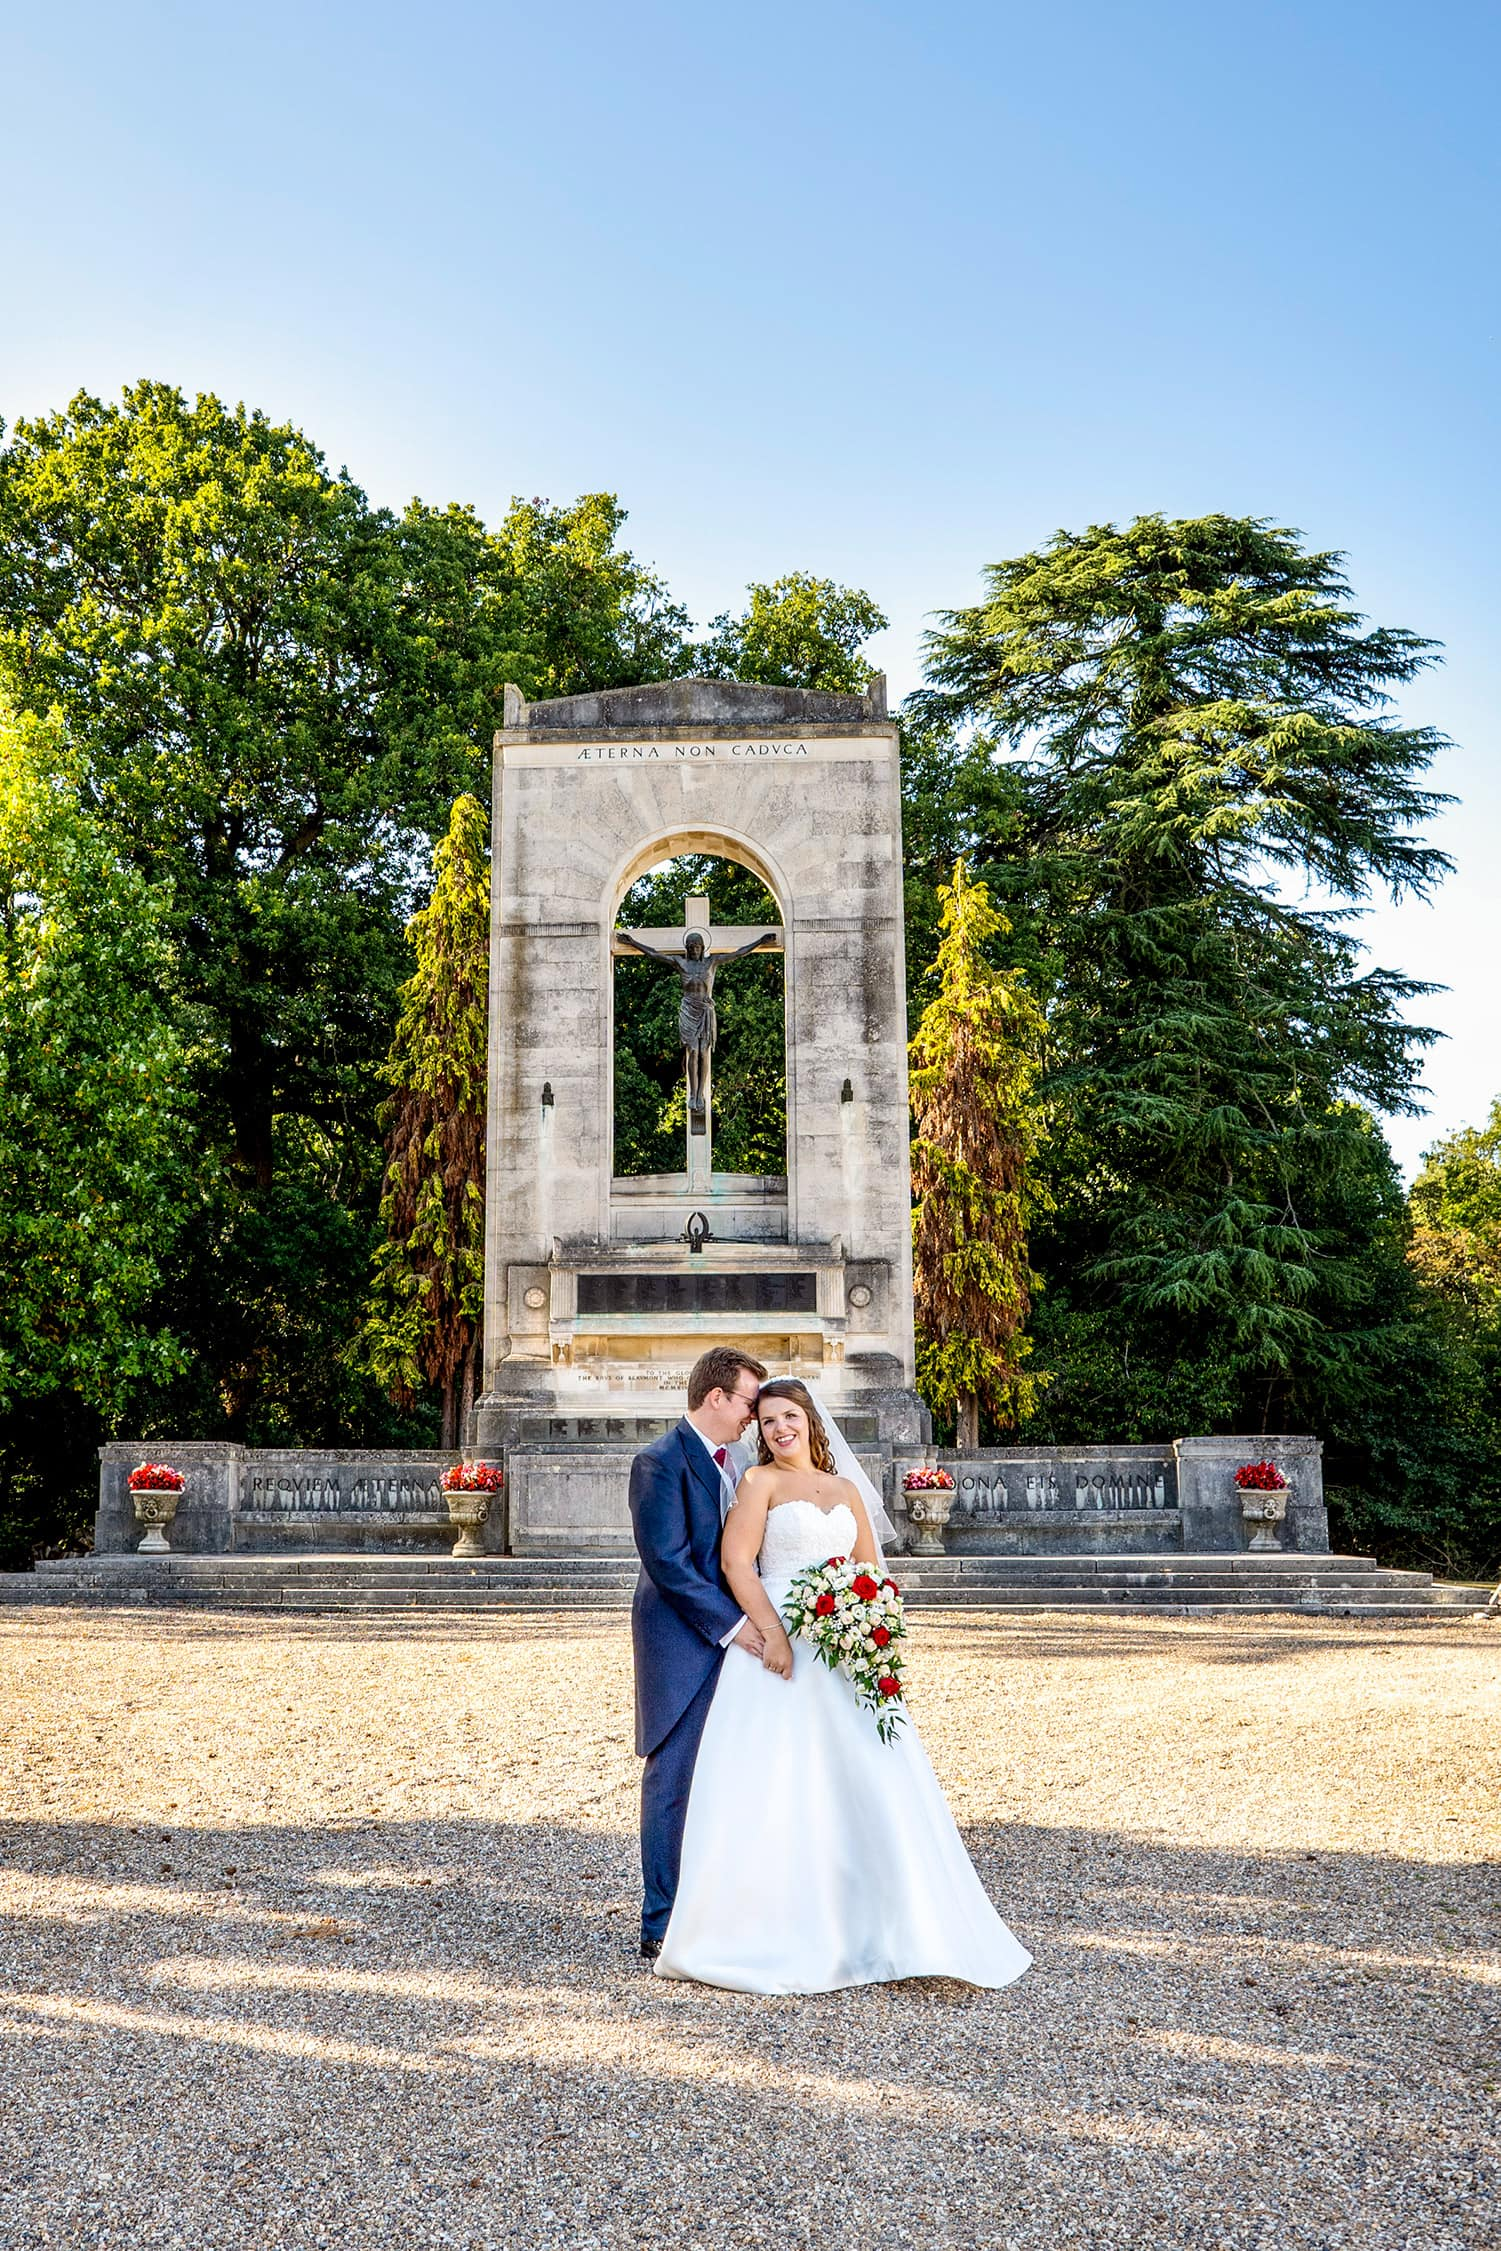 Summer wedding at Beaumont Estate with a happy bride and groom